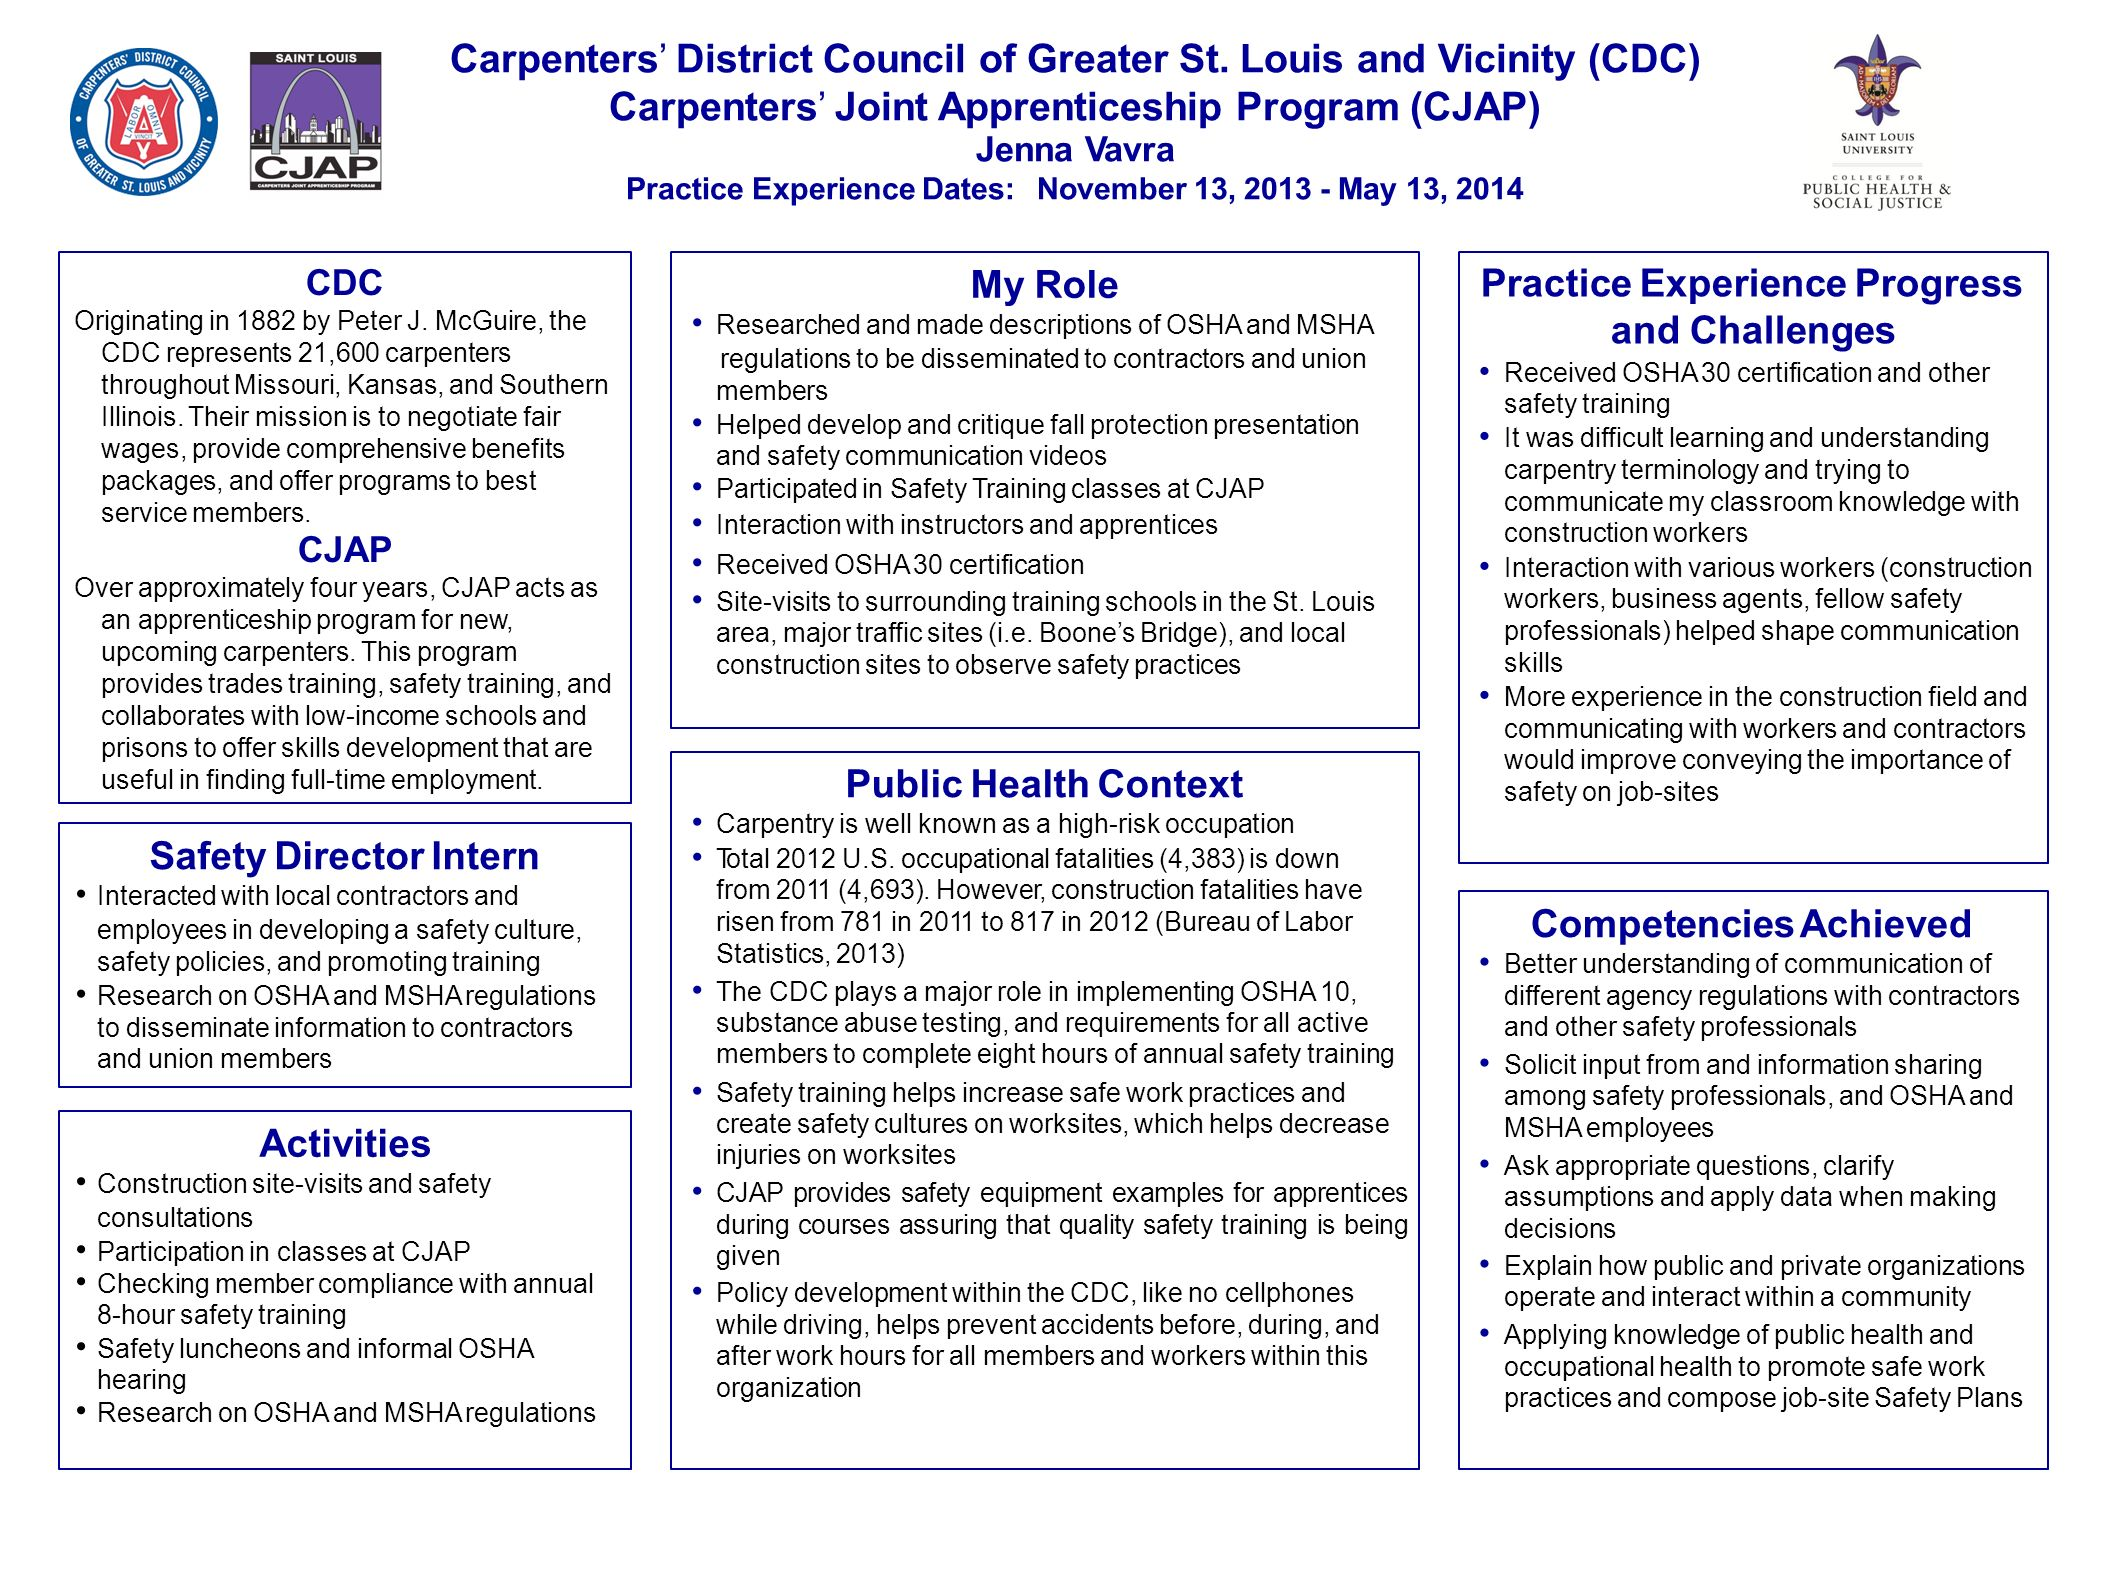 Saint charles county department of community health environment saint charles county department of community health environment andrew adams june 2014 september 2014 organization st charles county department of 1betcityfo Choice Image